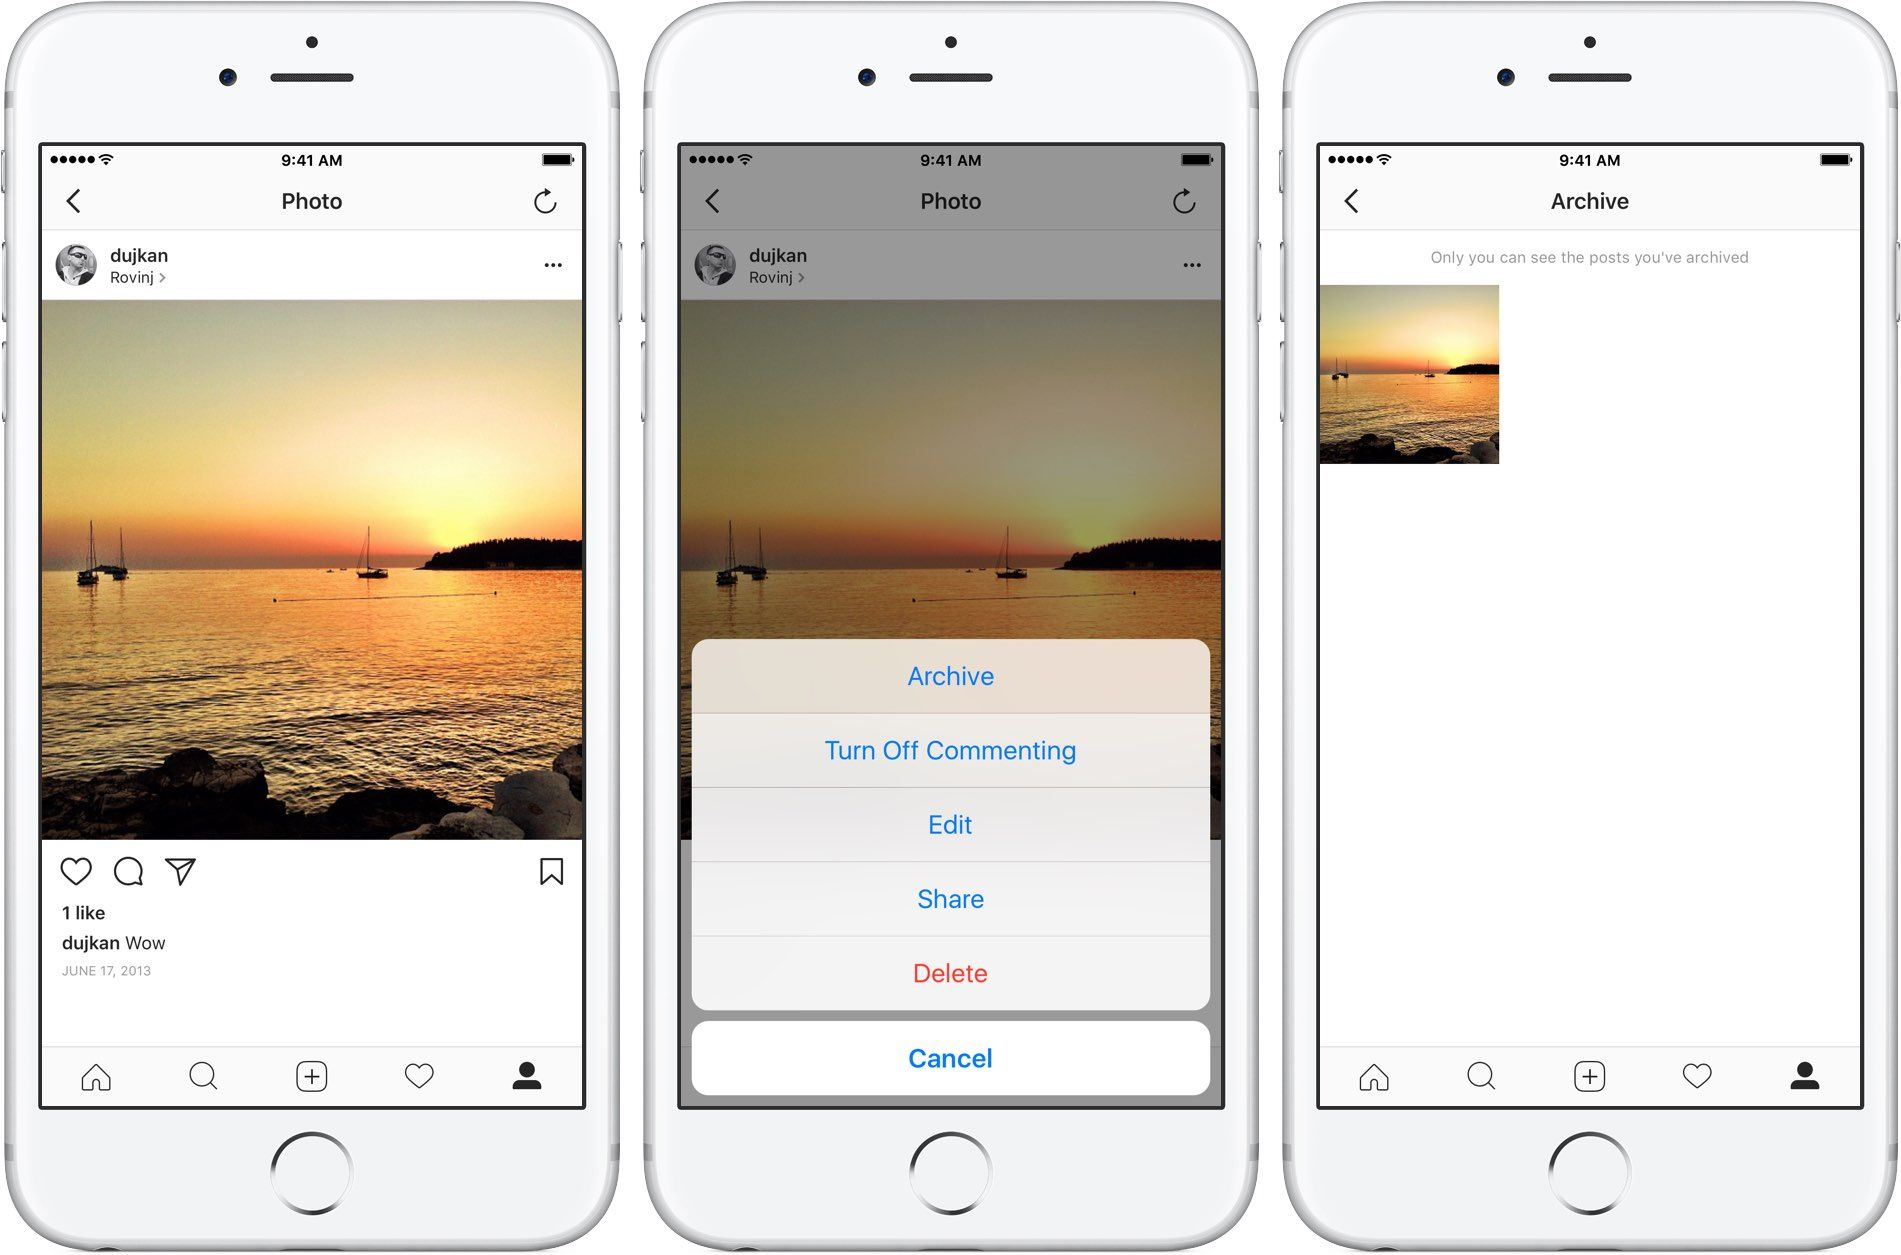 6b83efa5659f58c3c98f4b2b98d40528 - How To Get An Instagram Post Out Of Archive